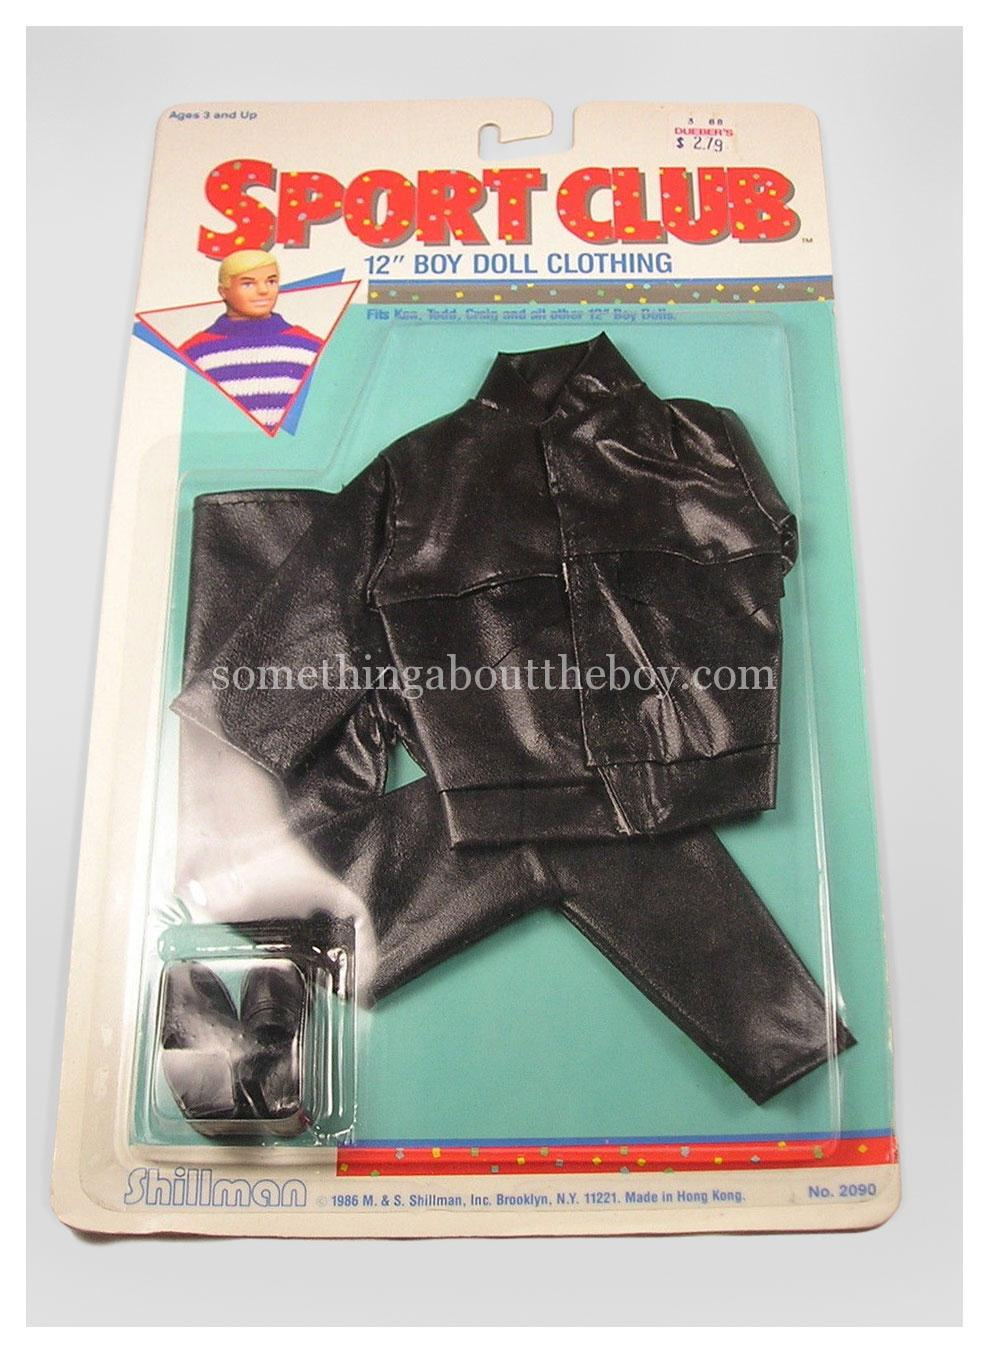 1986 Sport Club outfit by Shillman